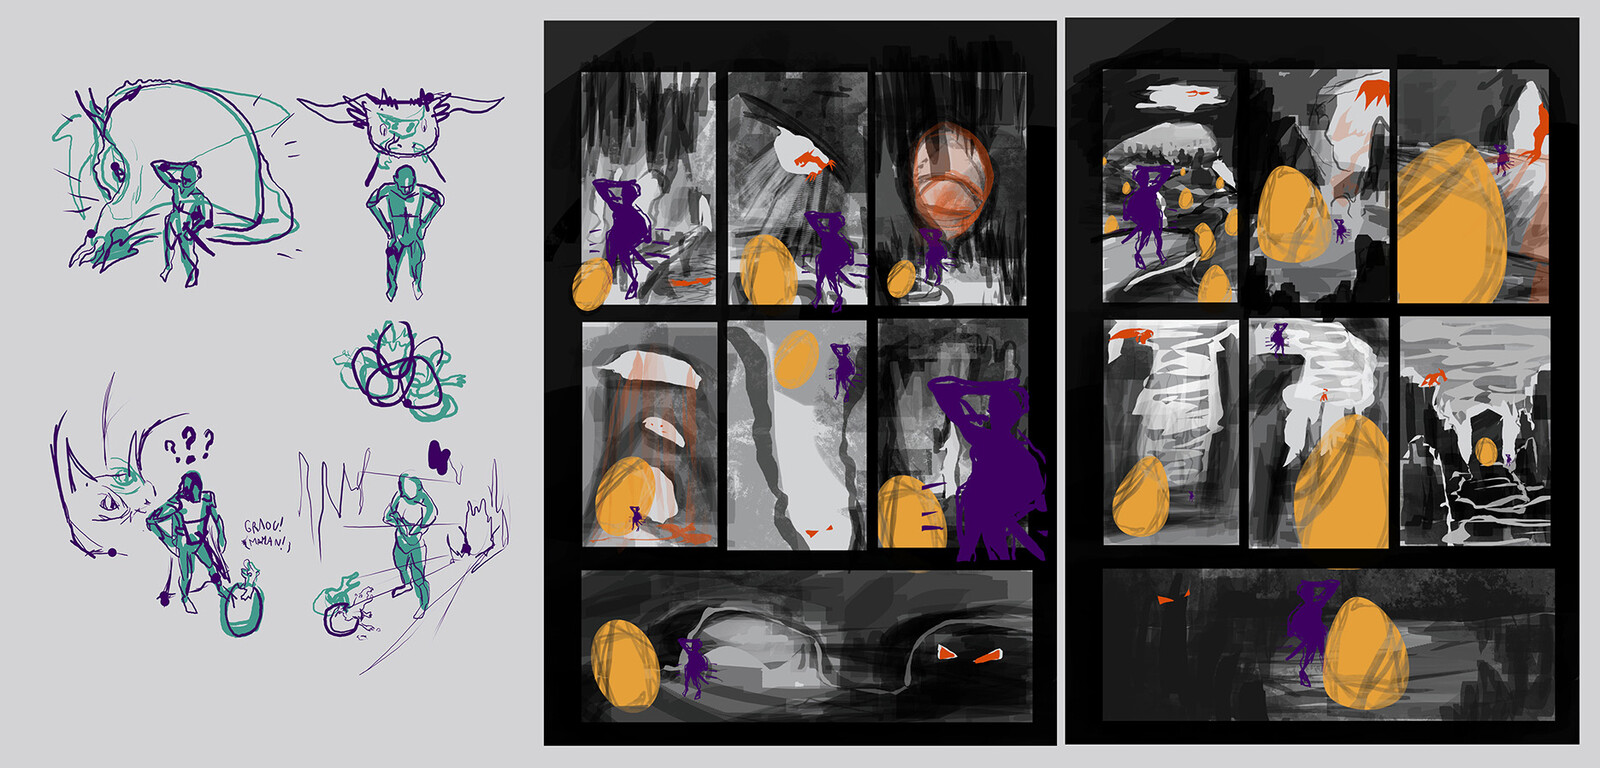 idea sketches and composition thumbnails